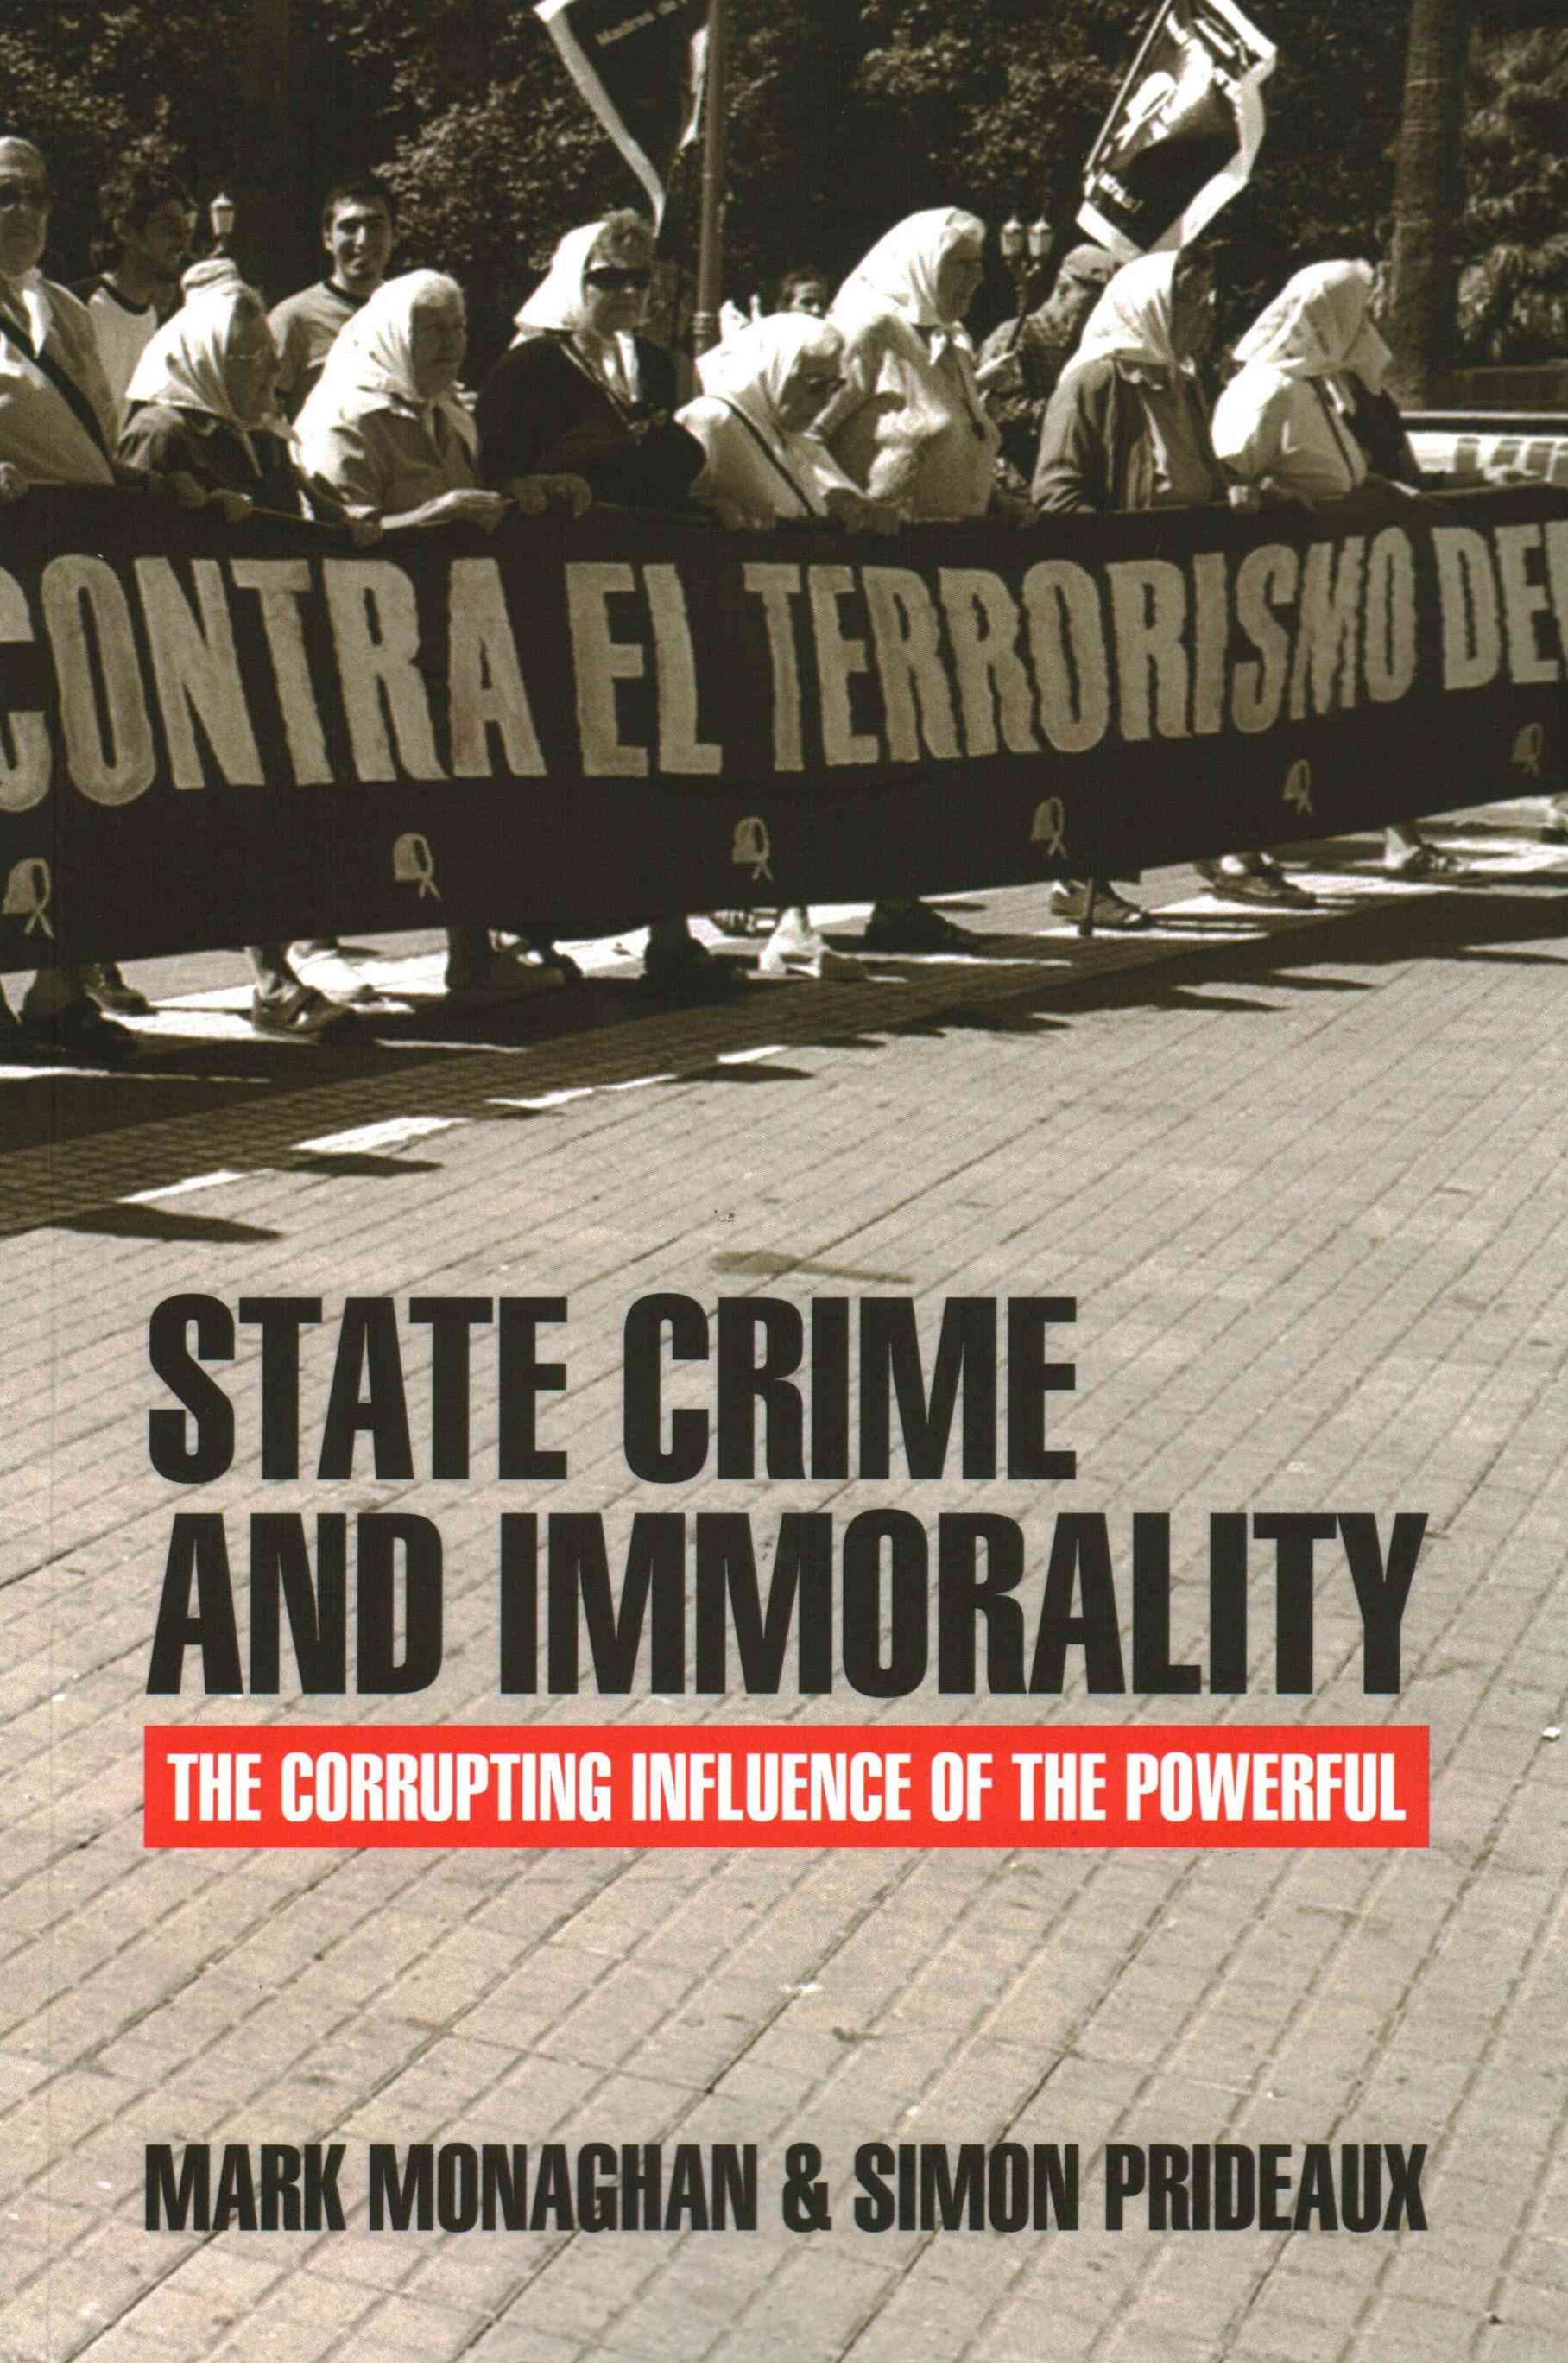 State crime and immorality